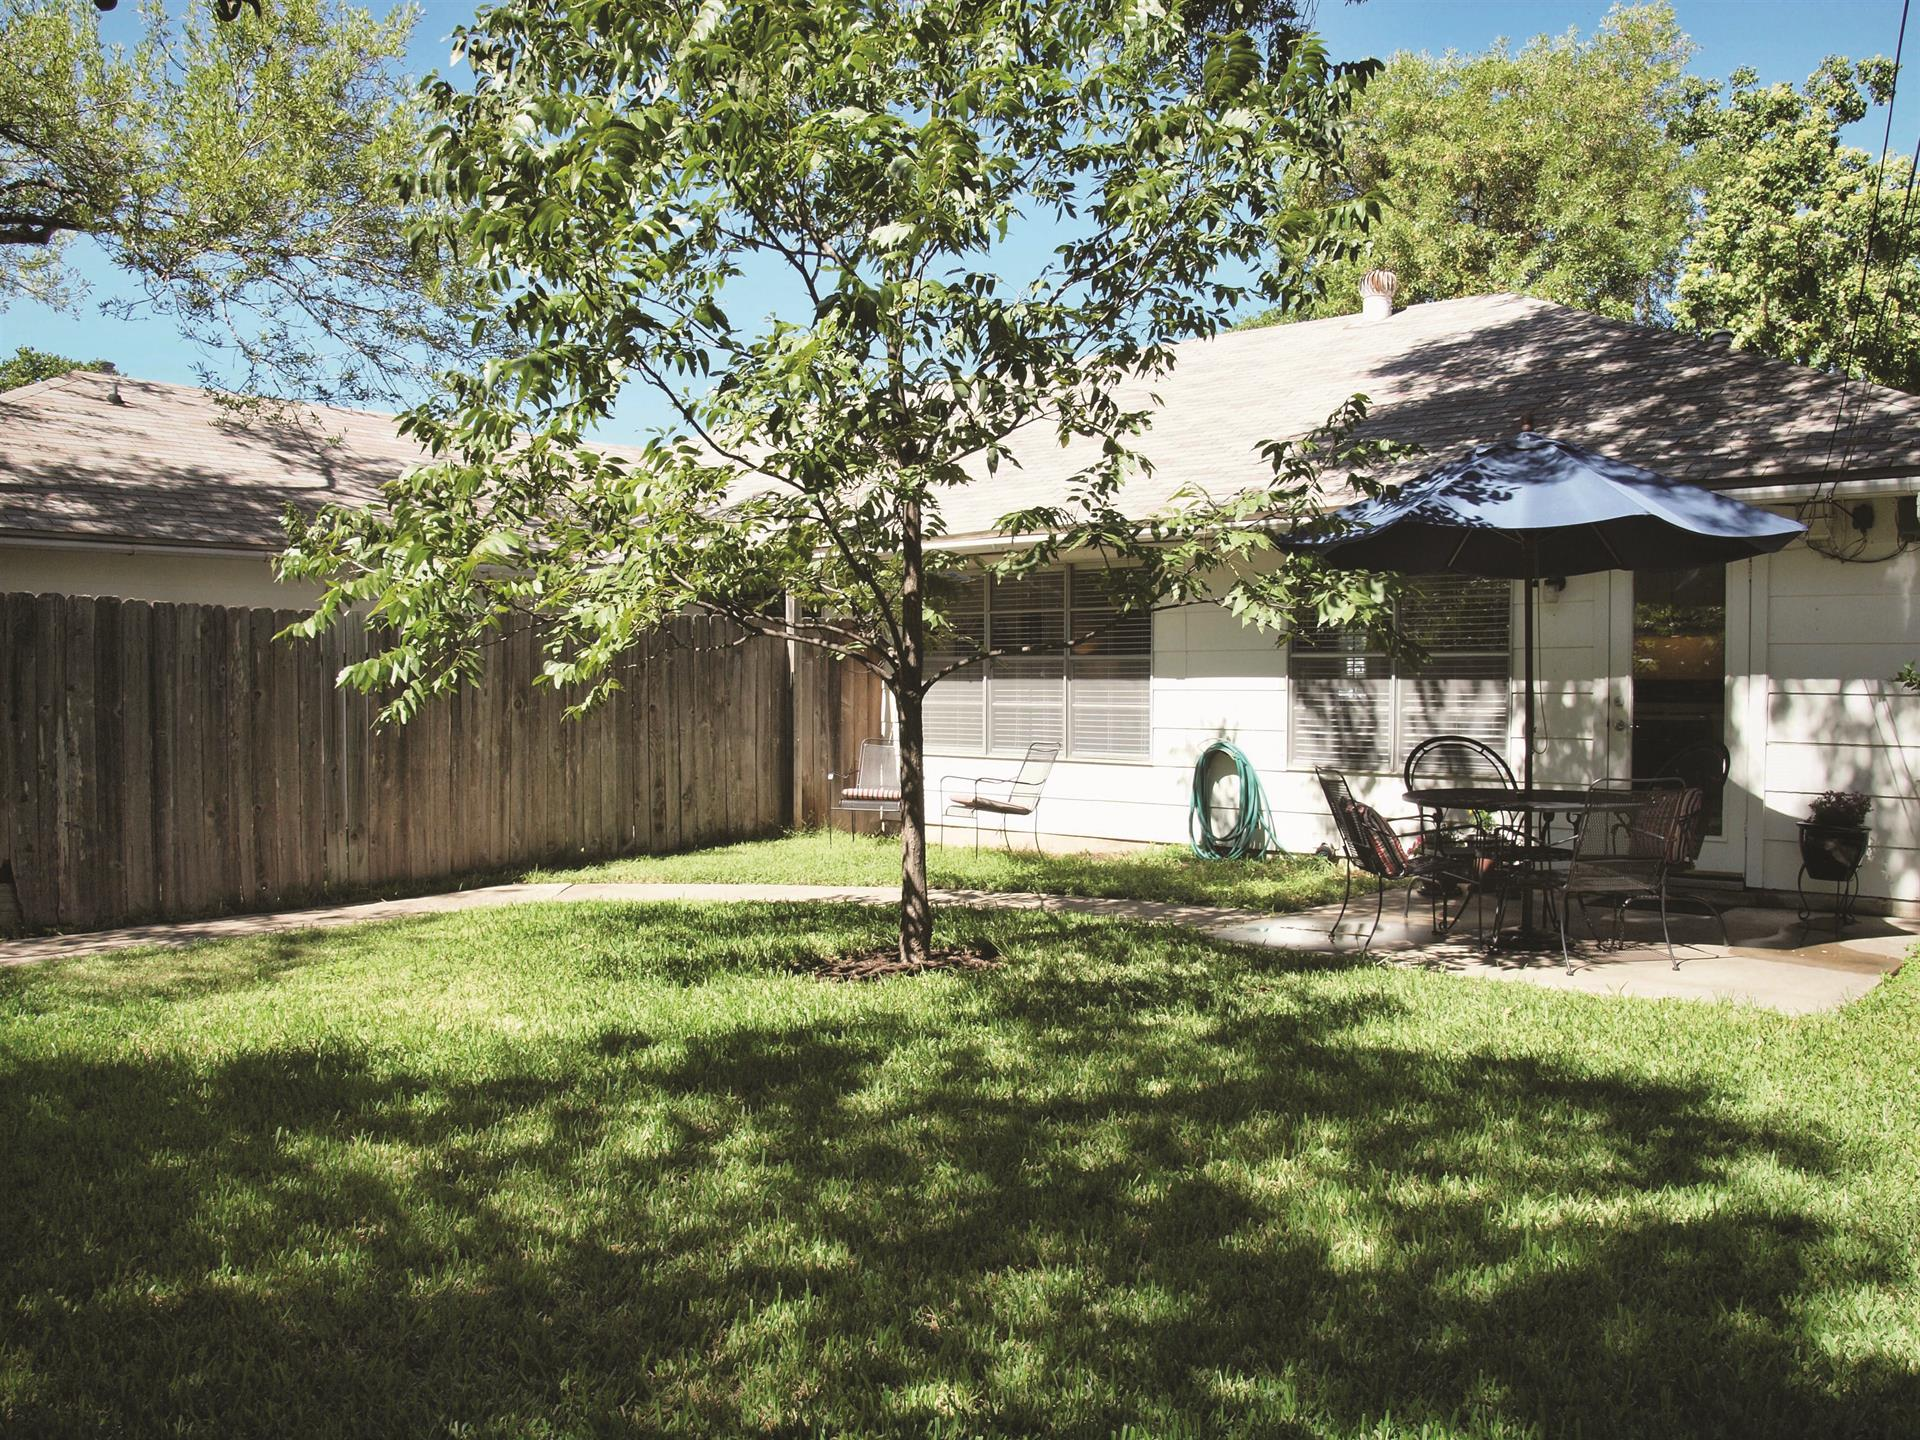 Additional photo for property listing at 2205 Teakwood Dr  Austin, Texas 78757 United States